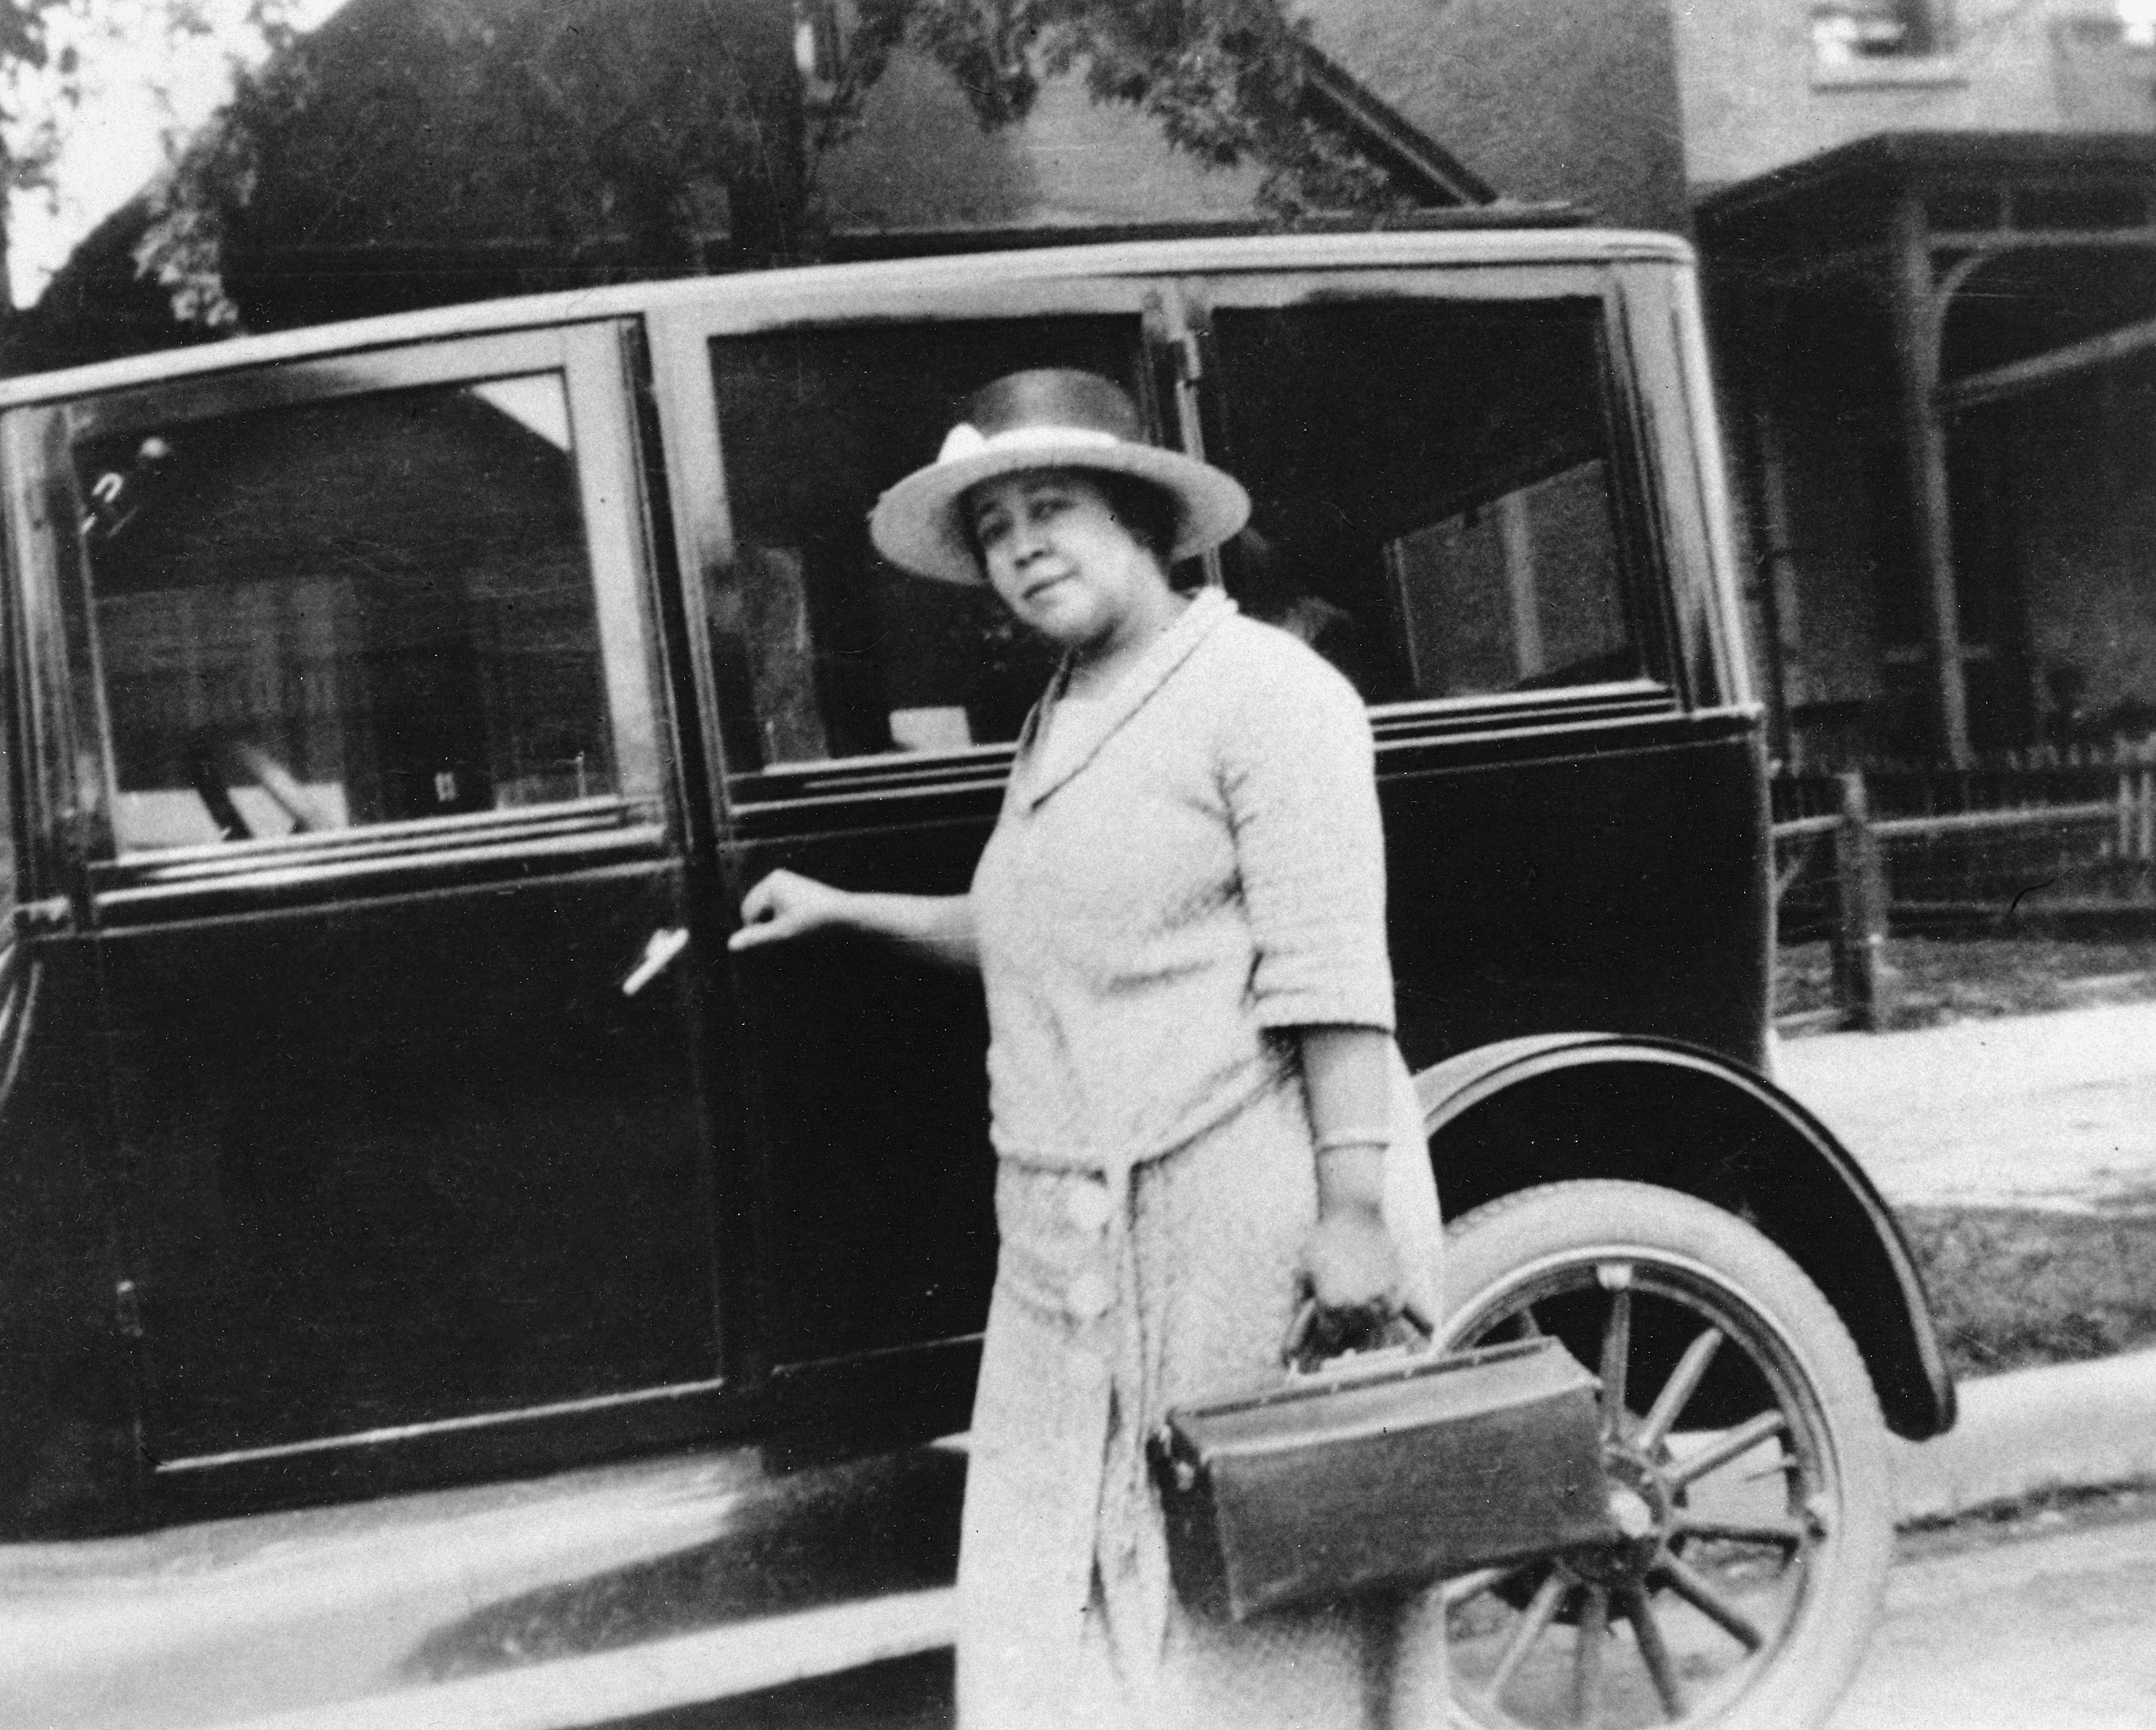 Dr. Justina Ford, circa 1920s. The first African American female doctor in Denver, Ford was initially denied a medical license. She and her patients were also denied access to Denver hospitals. Even so, late in life she estimated that she had delivered roughly 7,000 babies during her fifty-year career. In 1984, her Arapaho Street house and home office, scheduled for demolition by the city, was moved to its current location on California Street where it serves as the home of the Black American West Museum and Heritage Center.